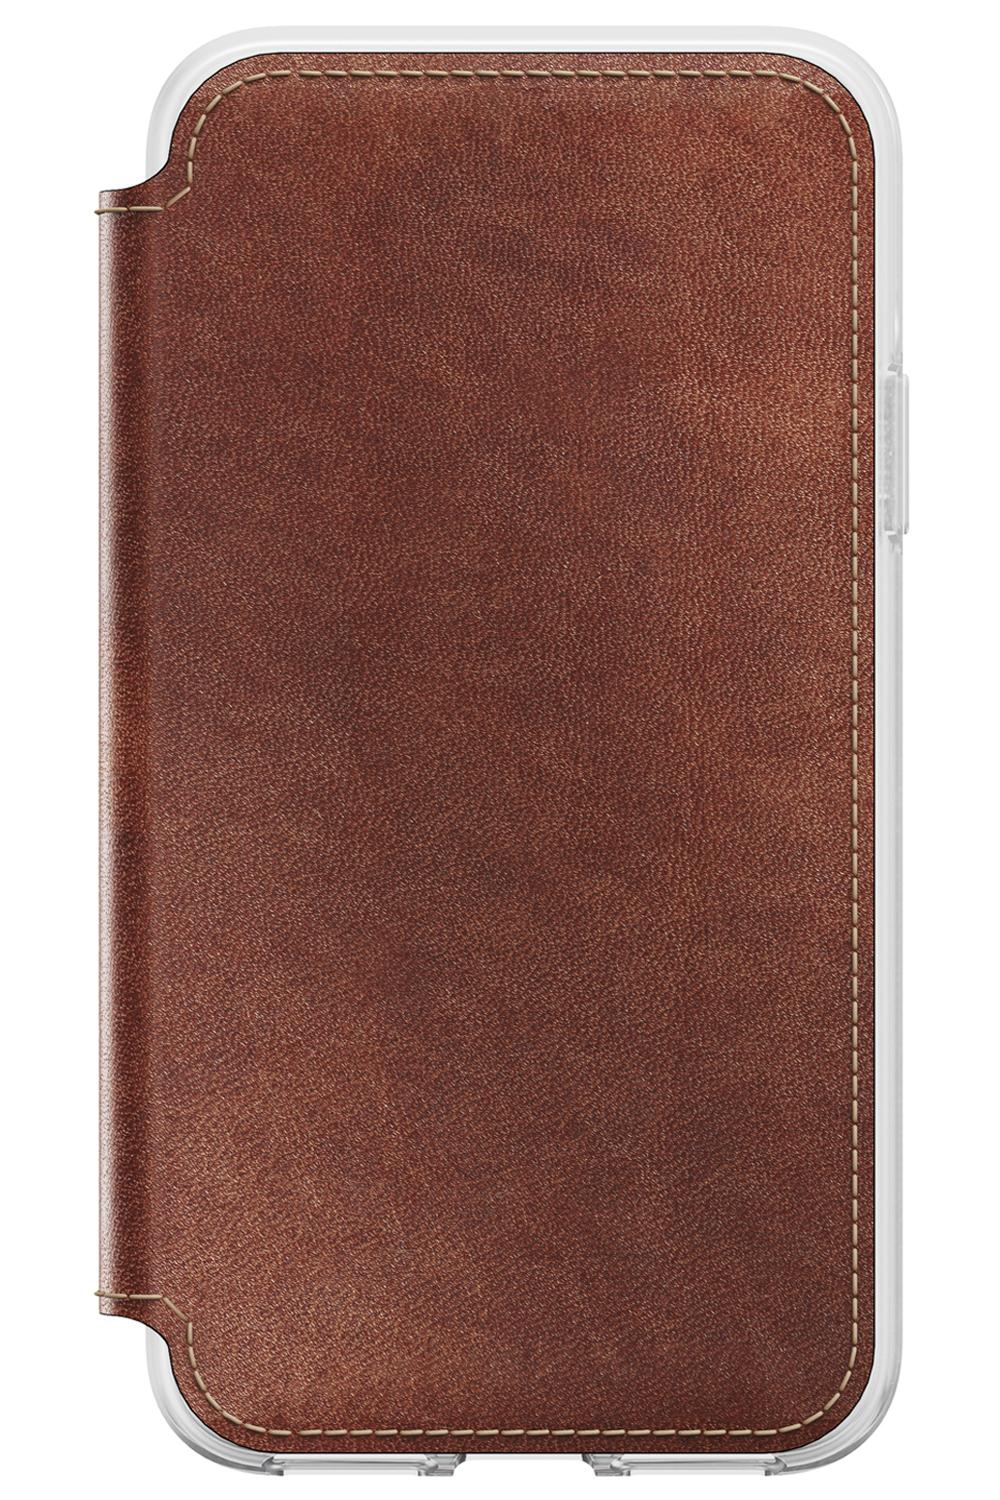 Nomad Leather Folio Clear Case Brown for iPhone X